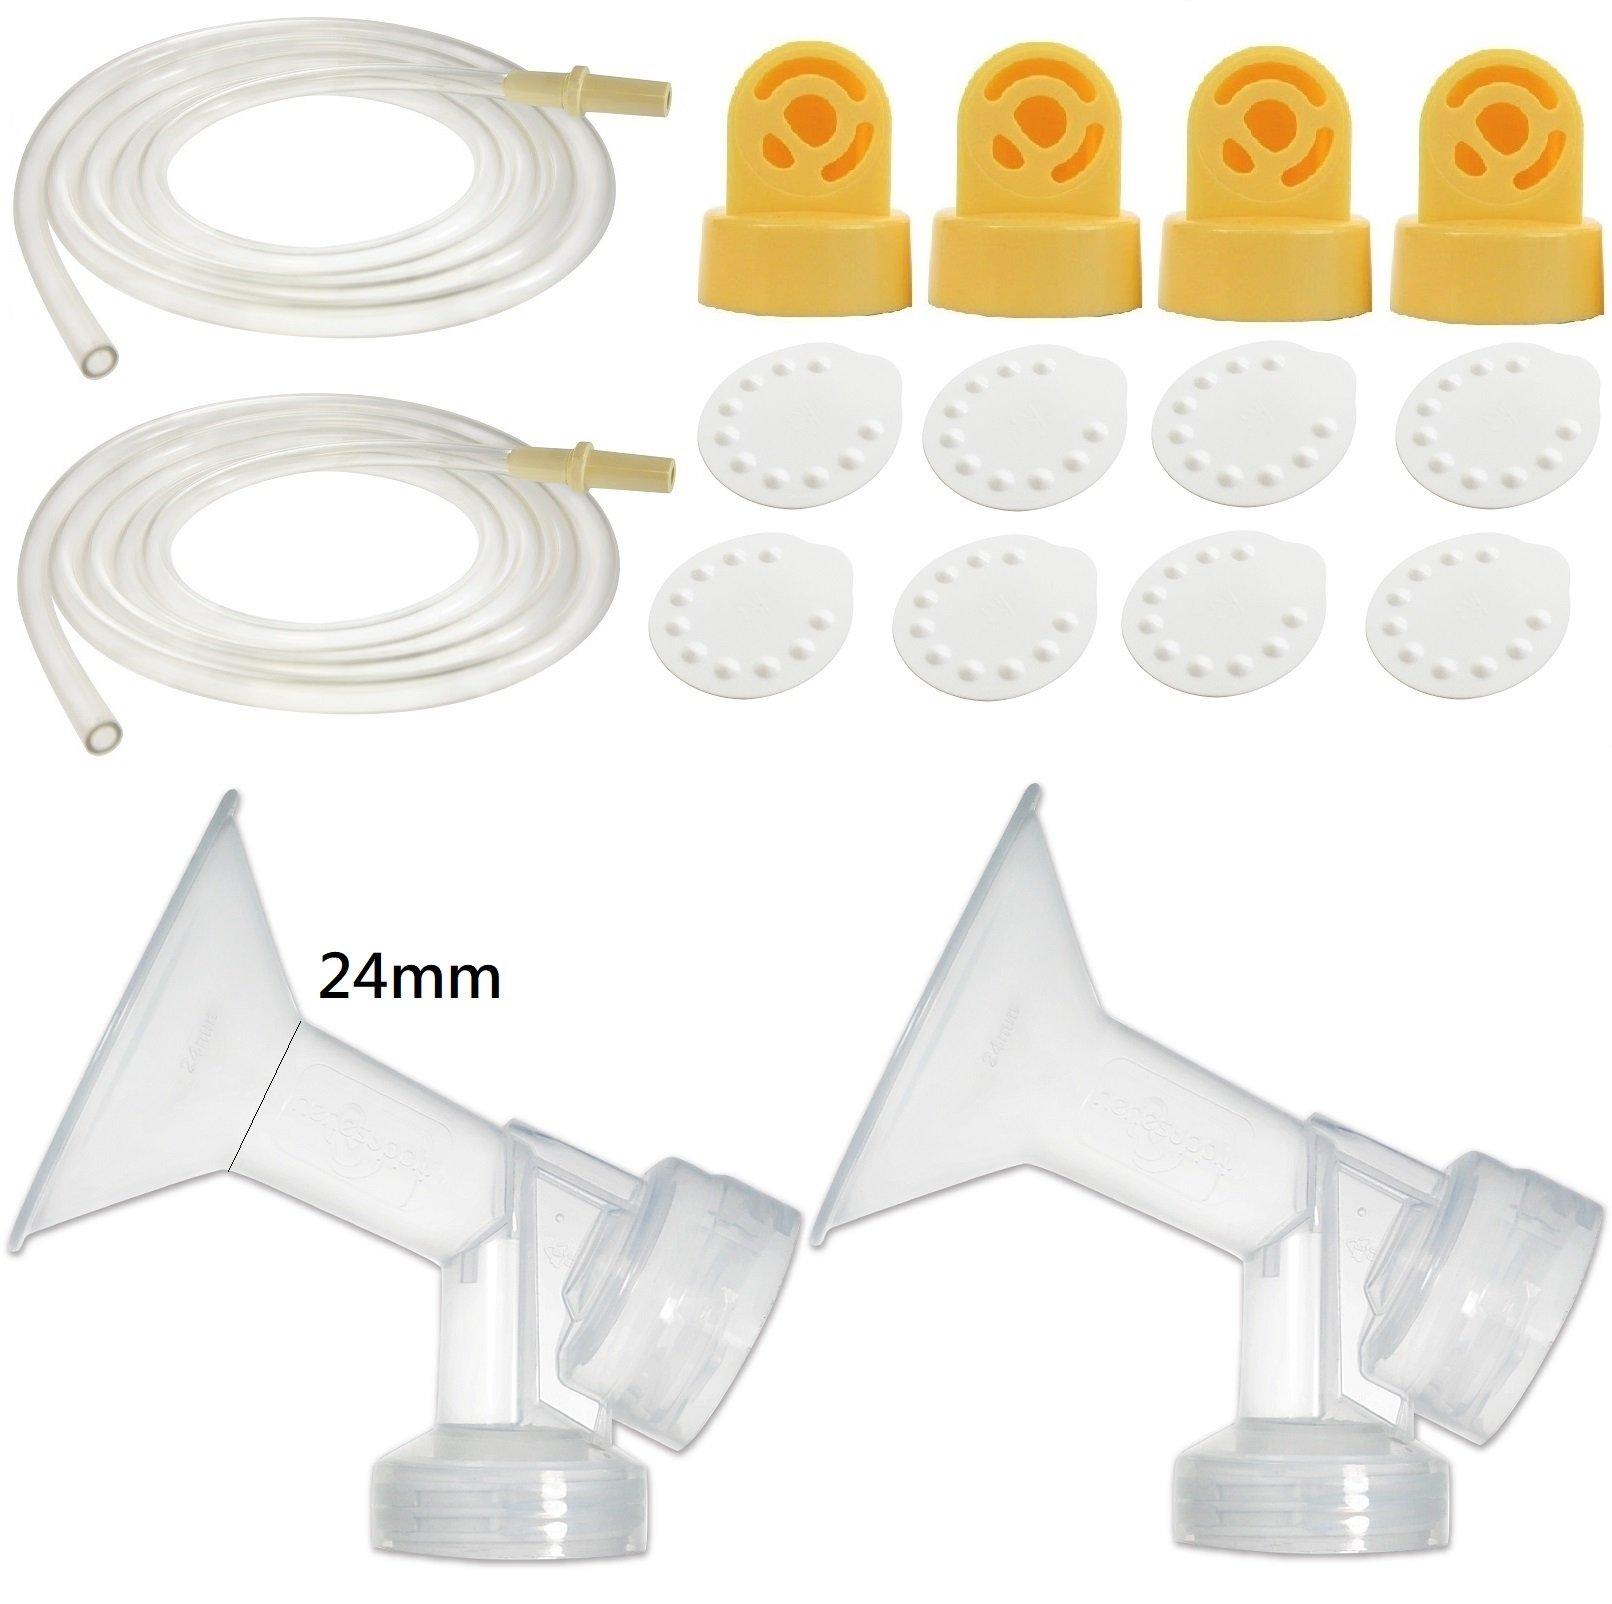 Nenesupply Compatible Pump Parts for Medela Pump in Style Breastpump 24mm Breastshield Valve Membrane Tubing Not Original Medela Pump Parts Replace Medela Pumpinstyle Parts Replace Medela Accessories by NENESUPPLY